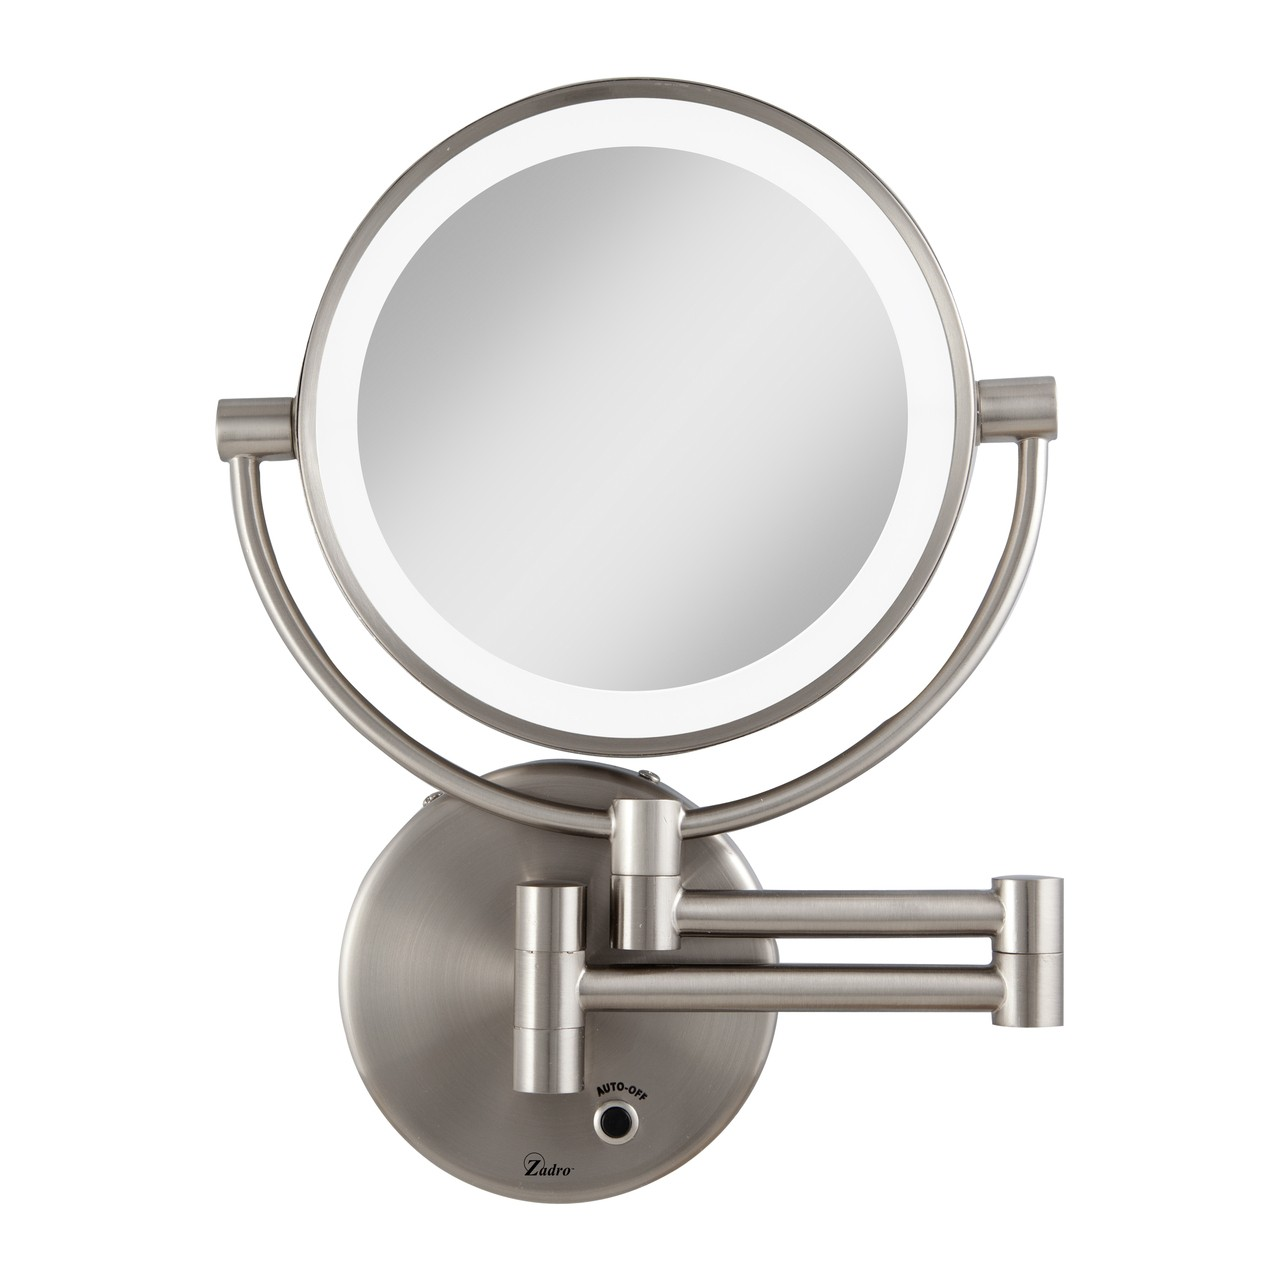 Zadro Cordless LED Lighted Wall Mount Mirror 1X/5X